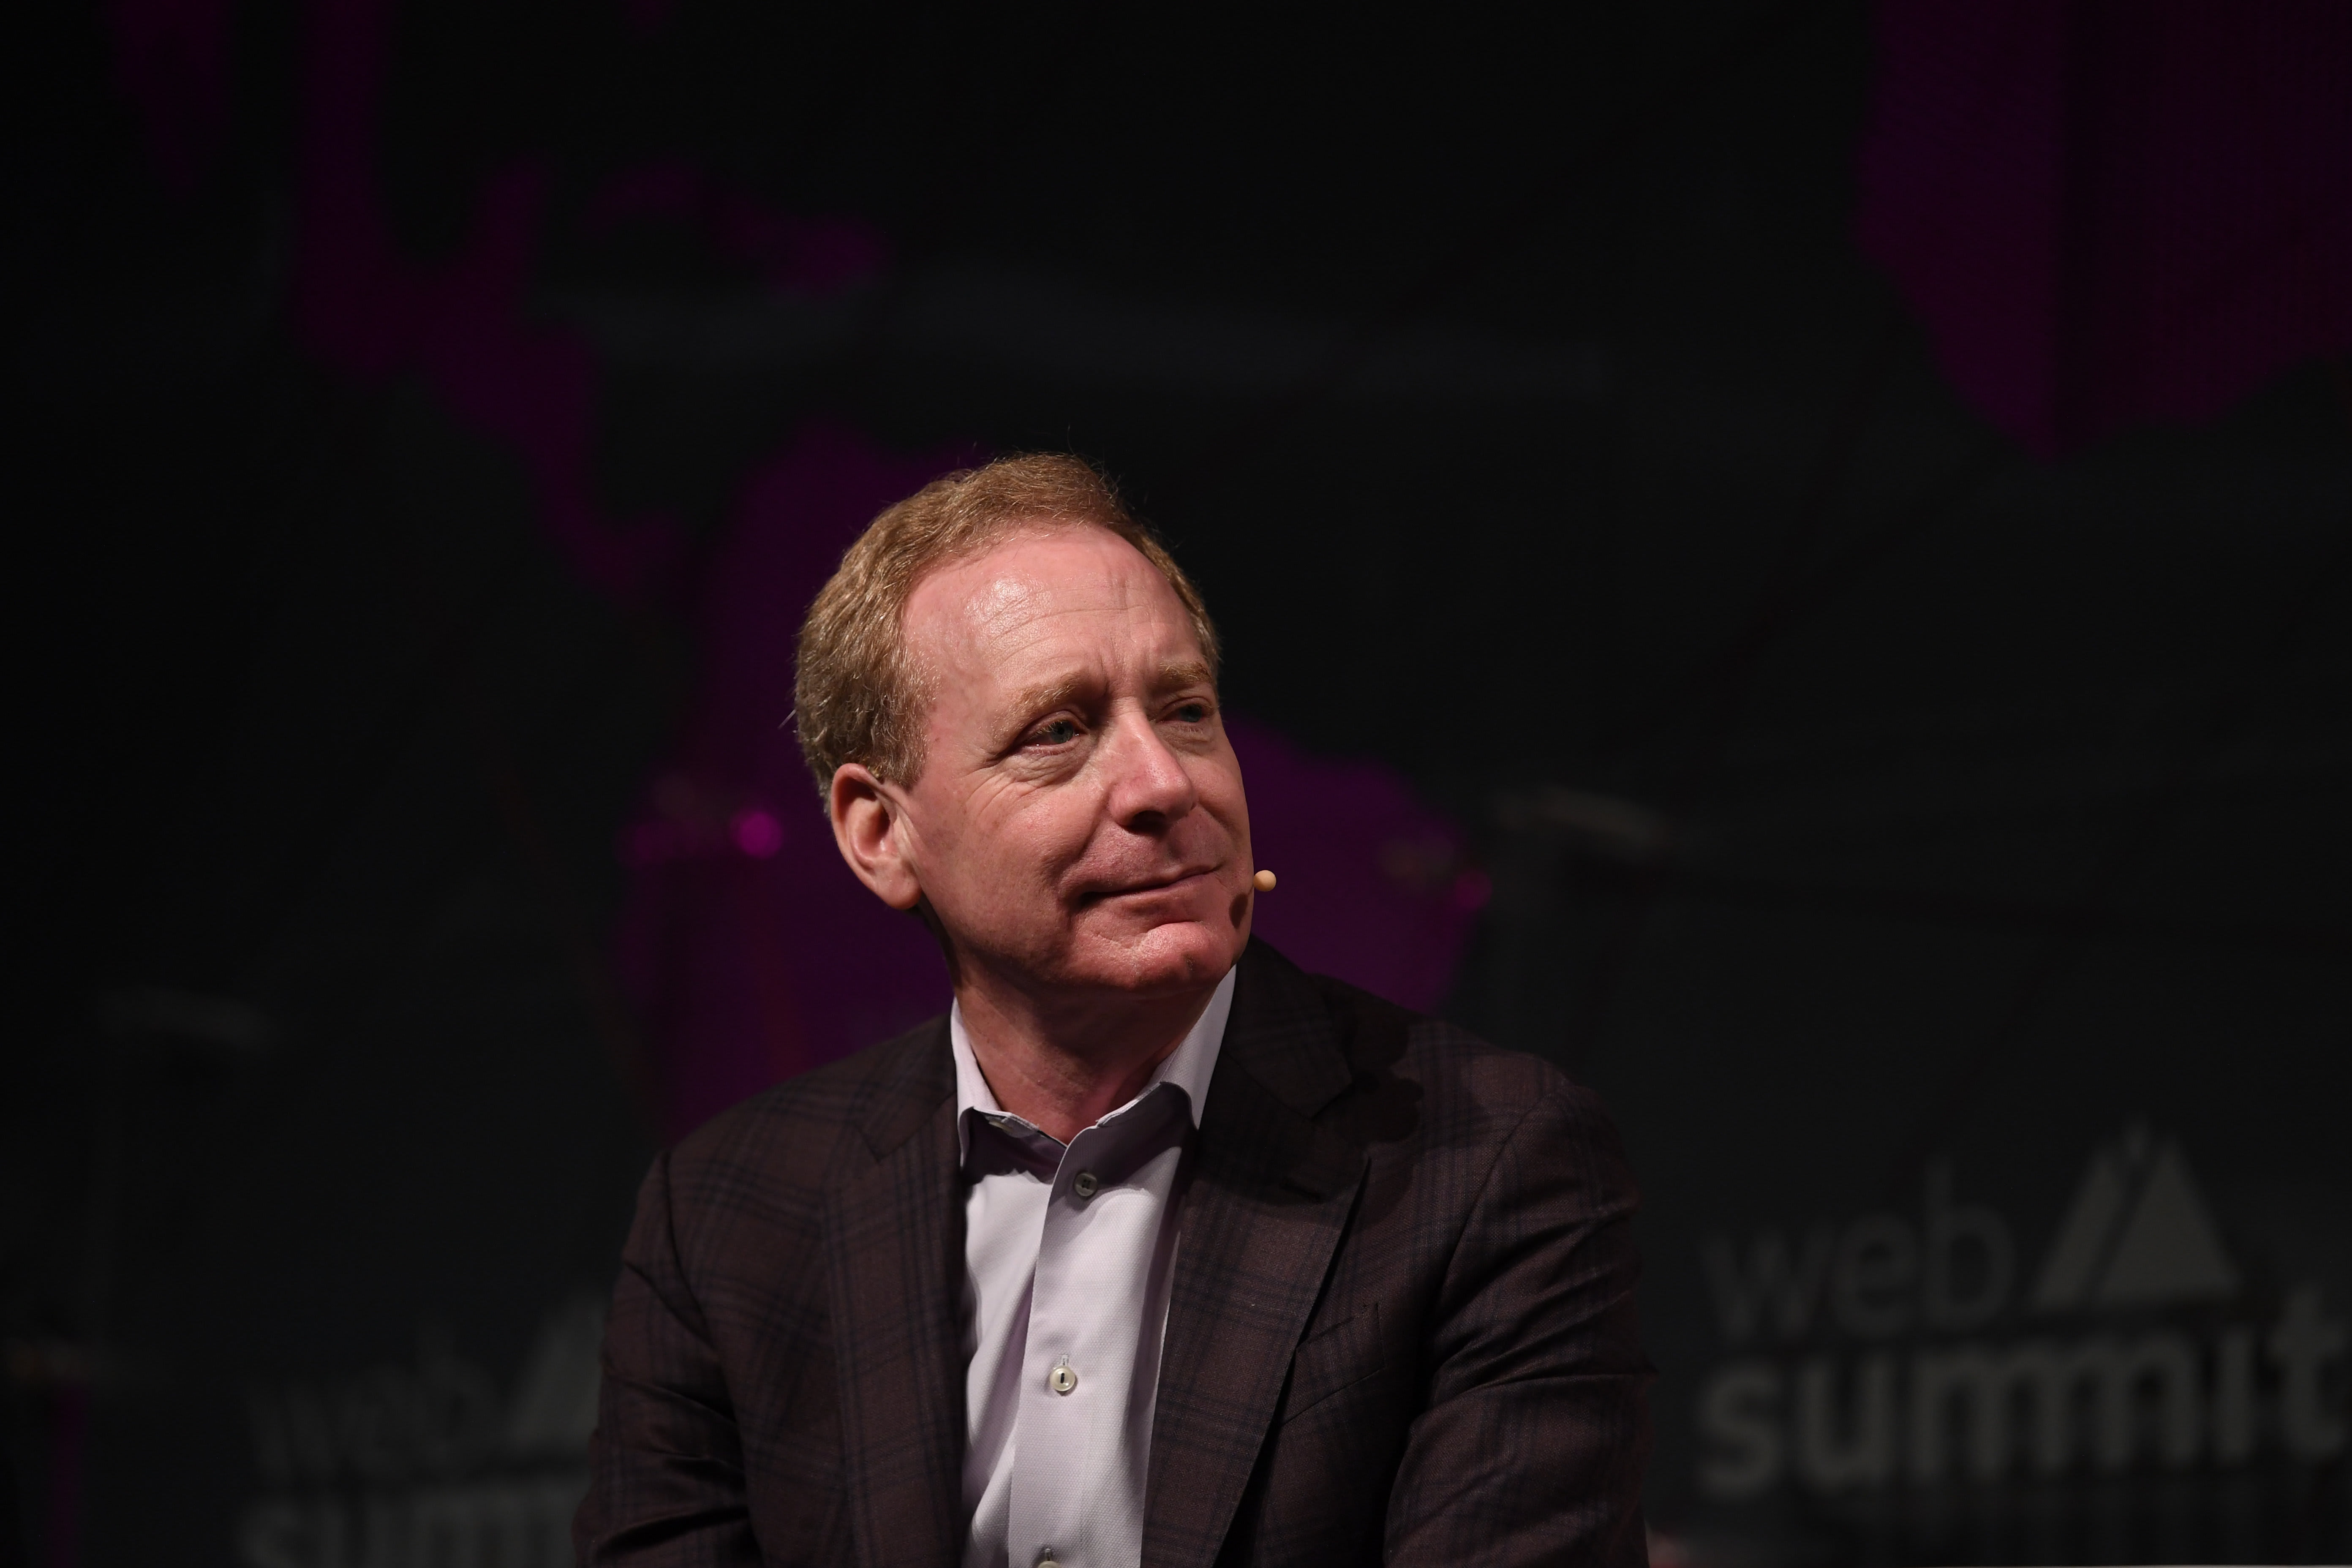 Microsoft President Brad Smith says work on JEDI continues despite Amazon protest